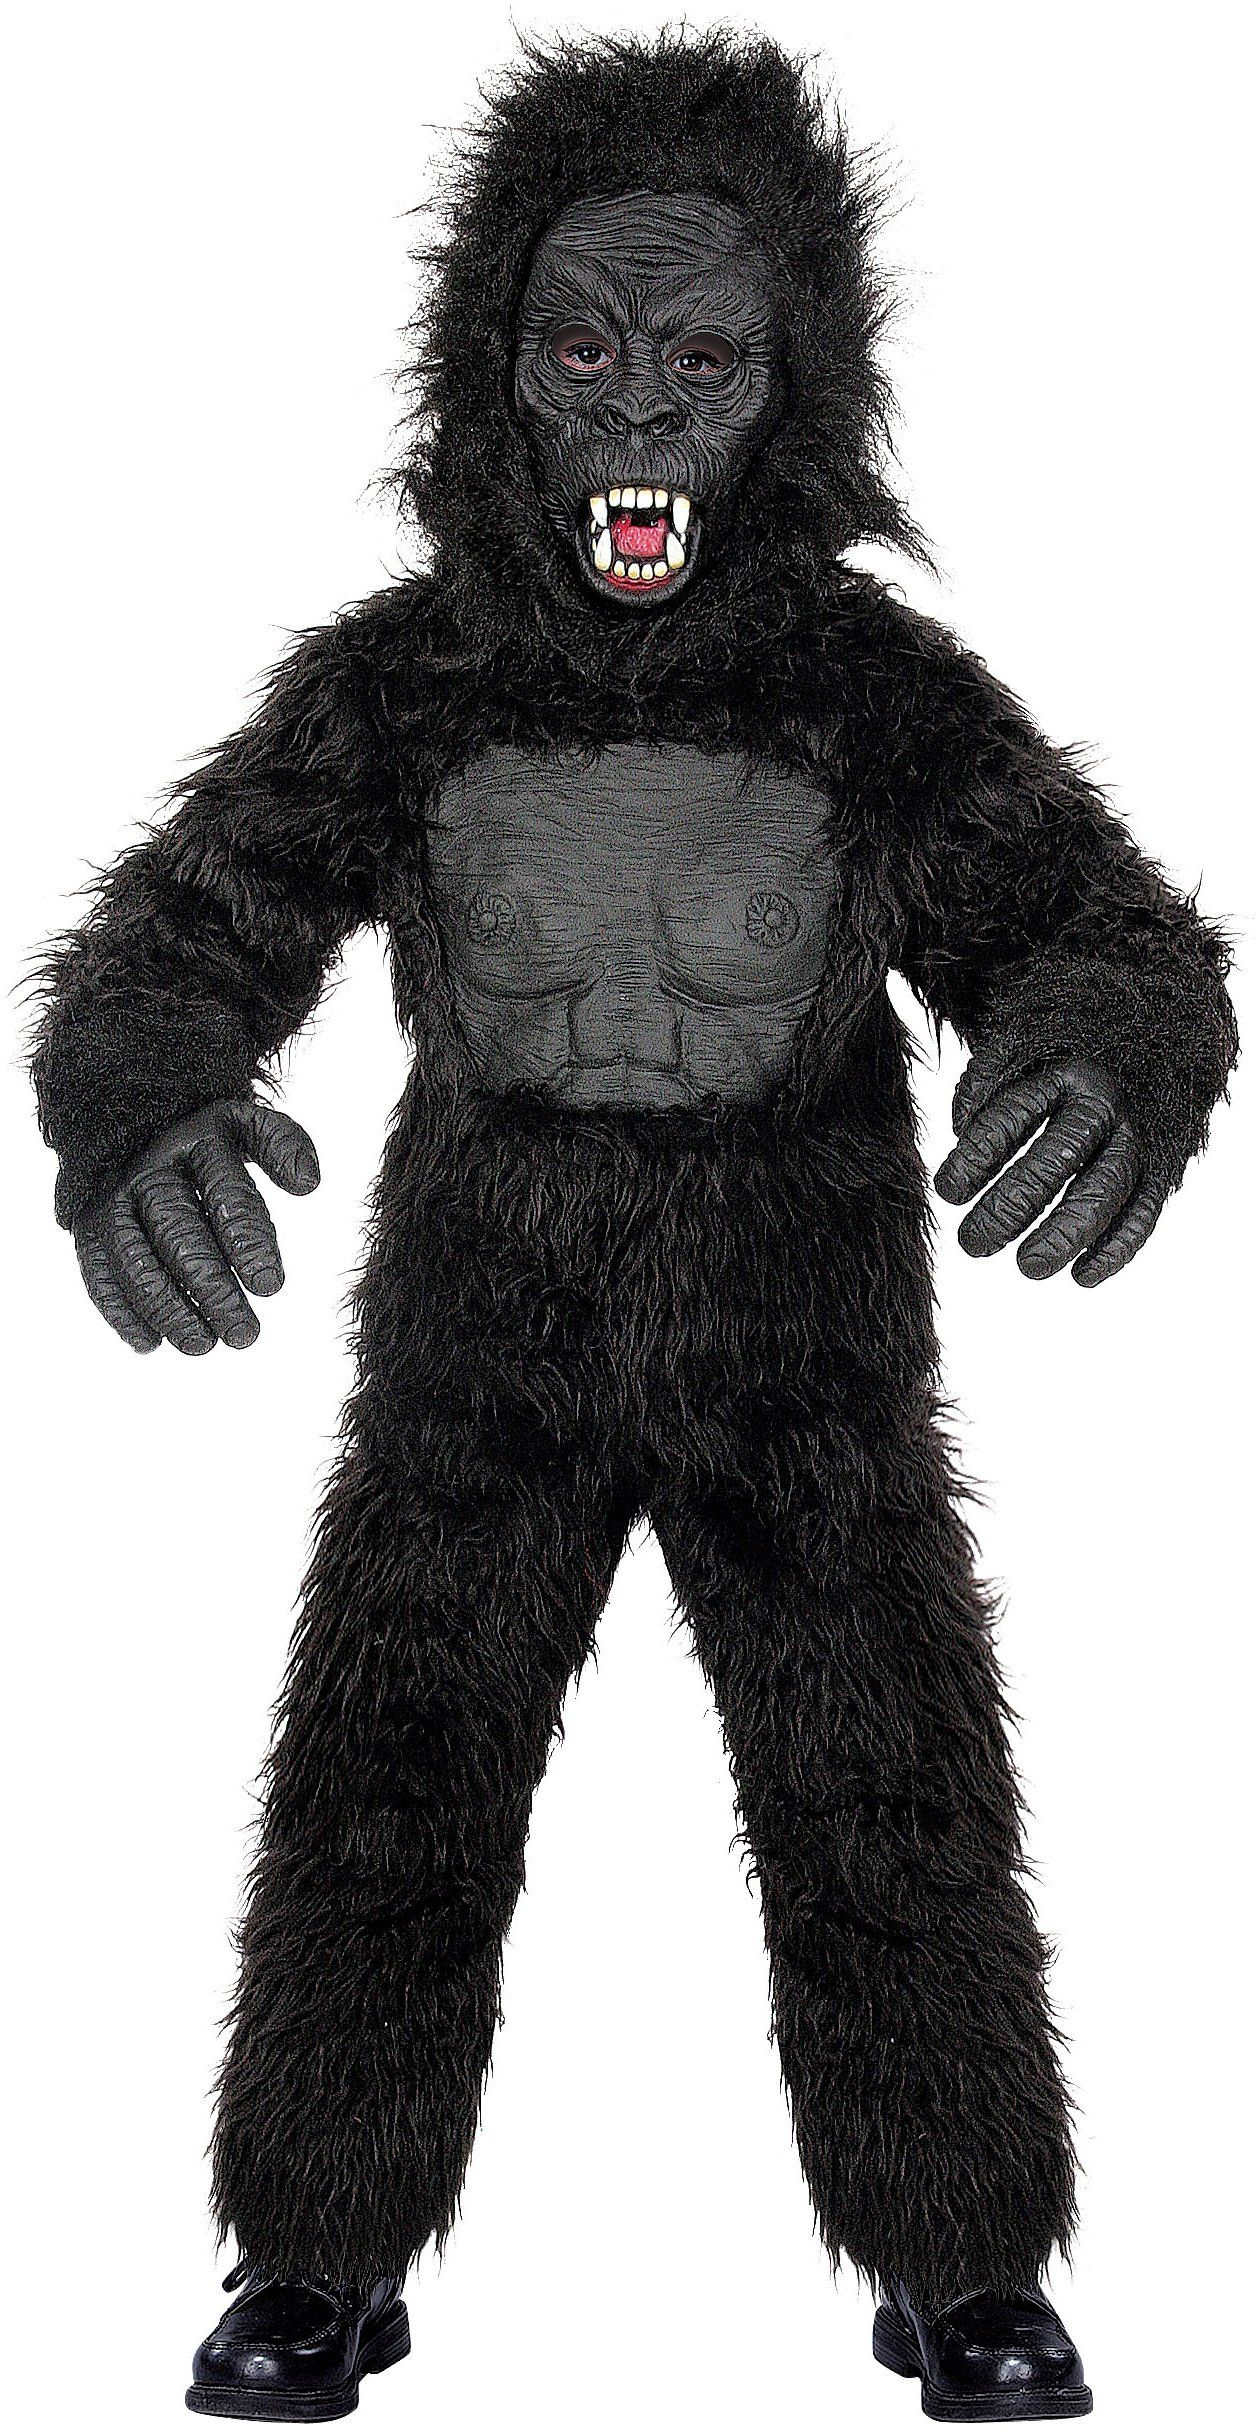 Mighty Gorilla Child Costume | Bigfoot costume, Children costumes ...